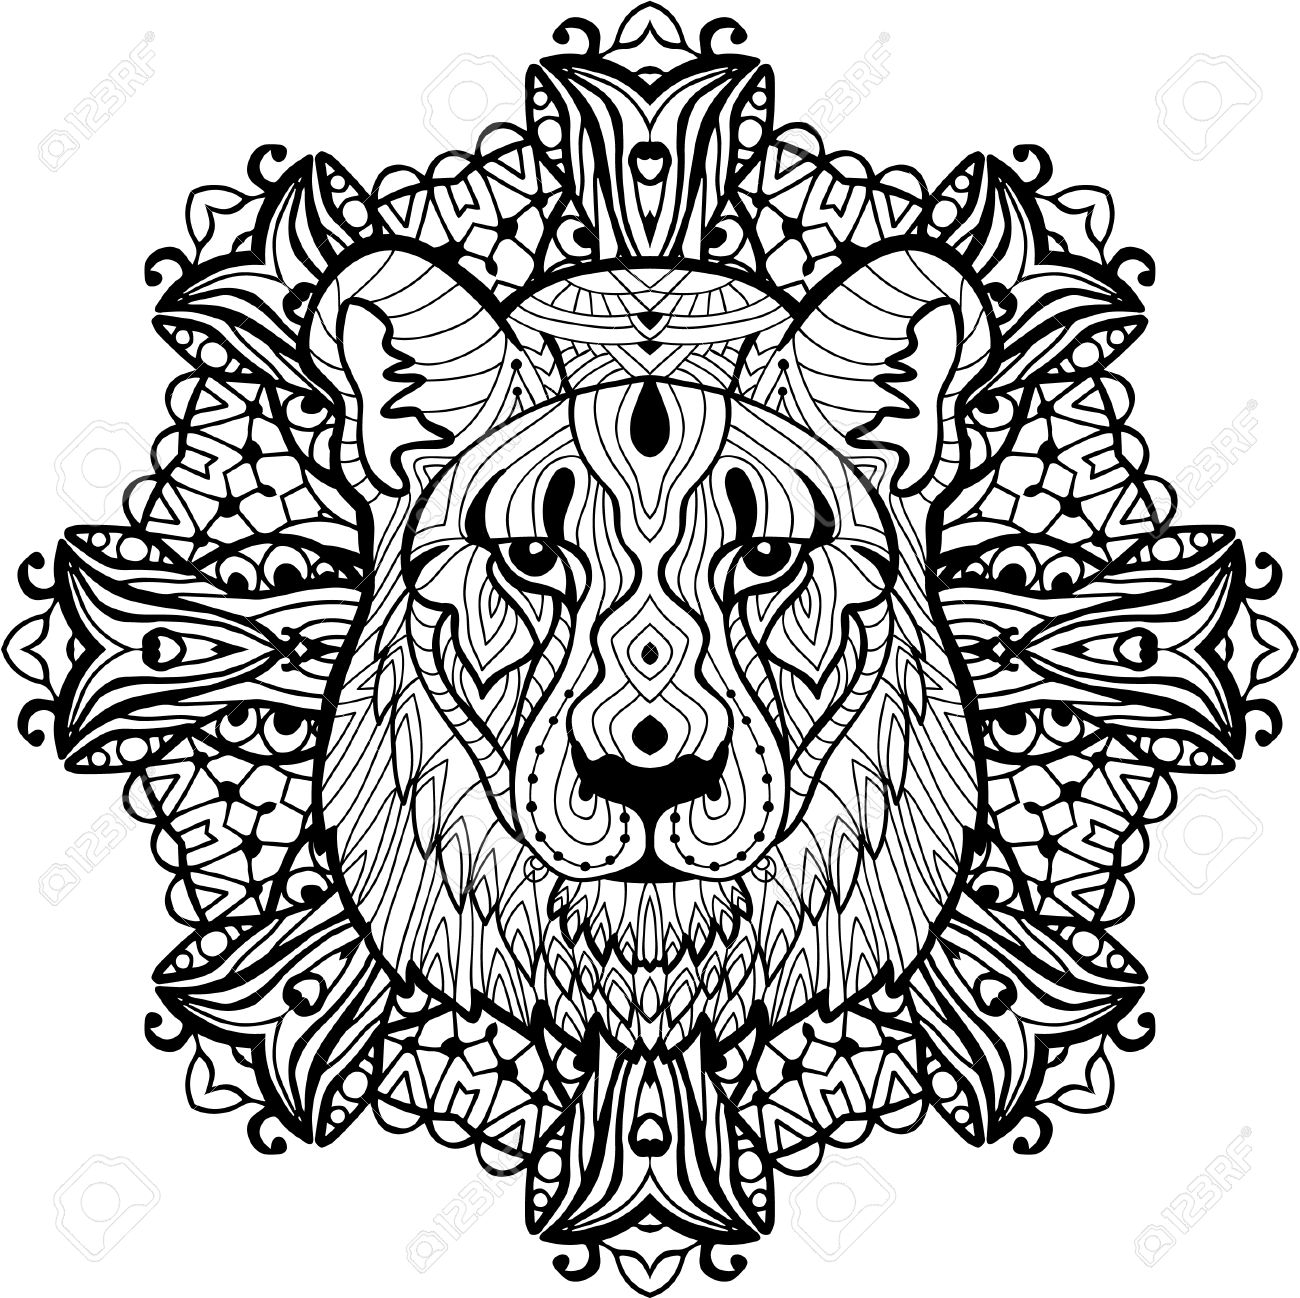 1300x1298 Best Of Lion Mandala Coloring Pages Collection Printable